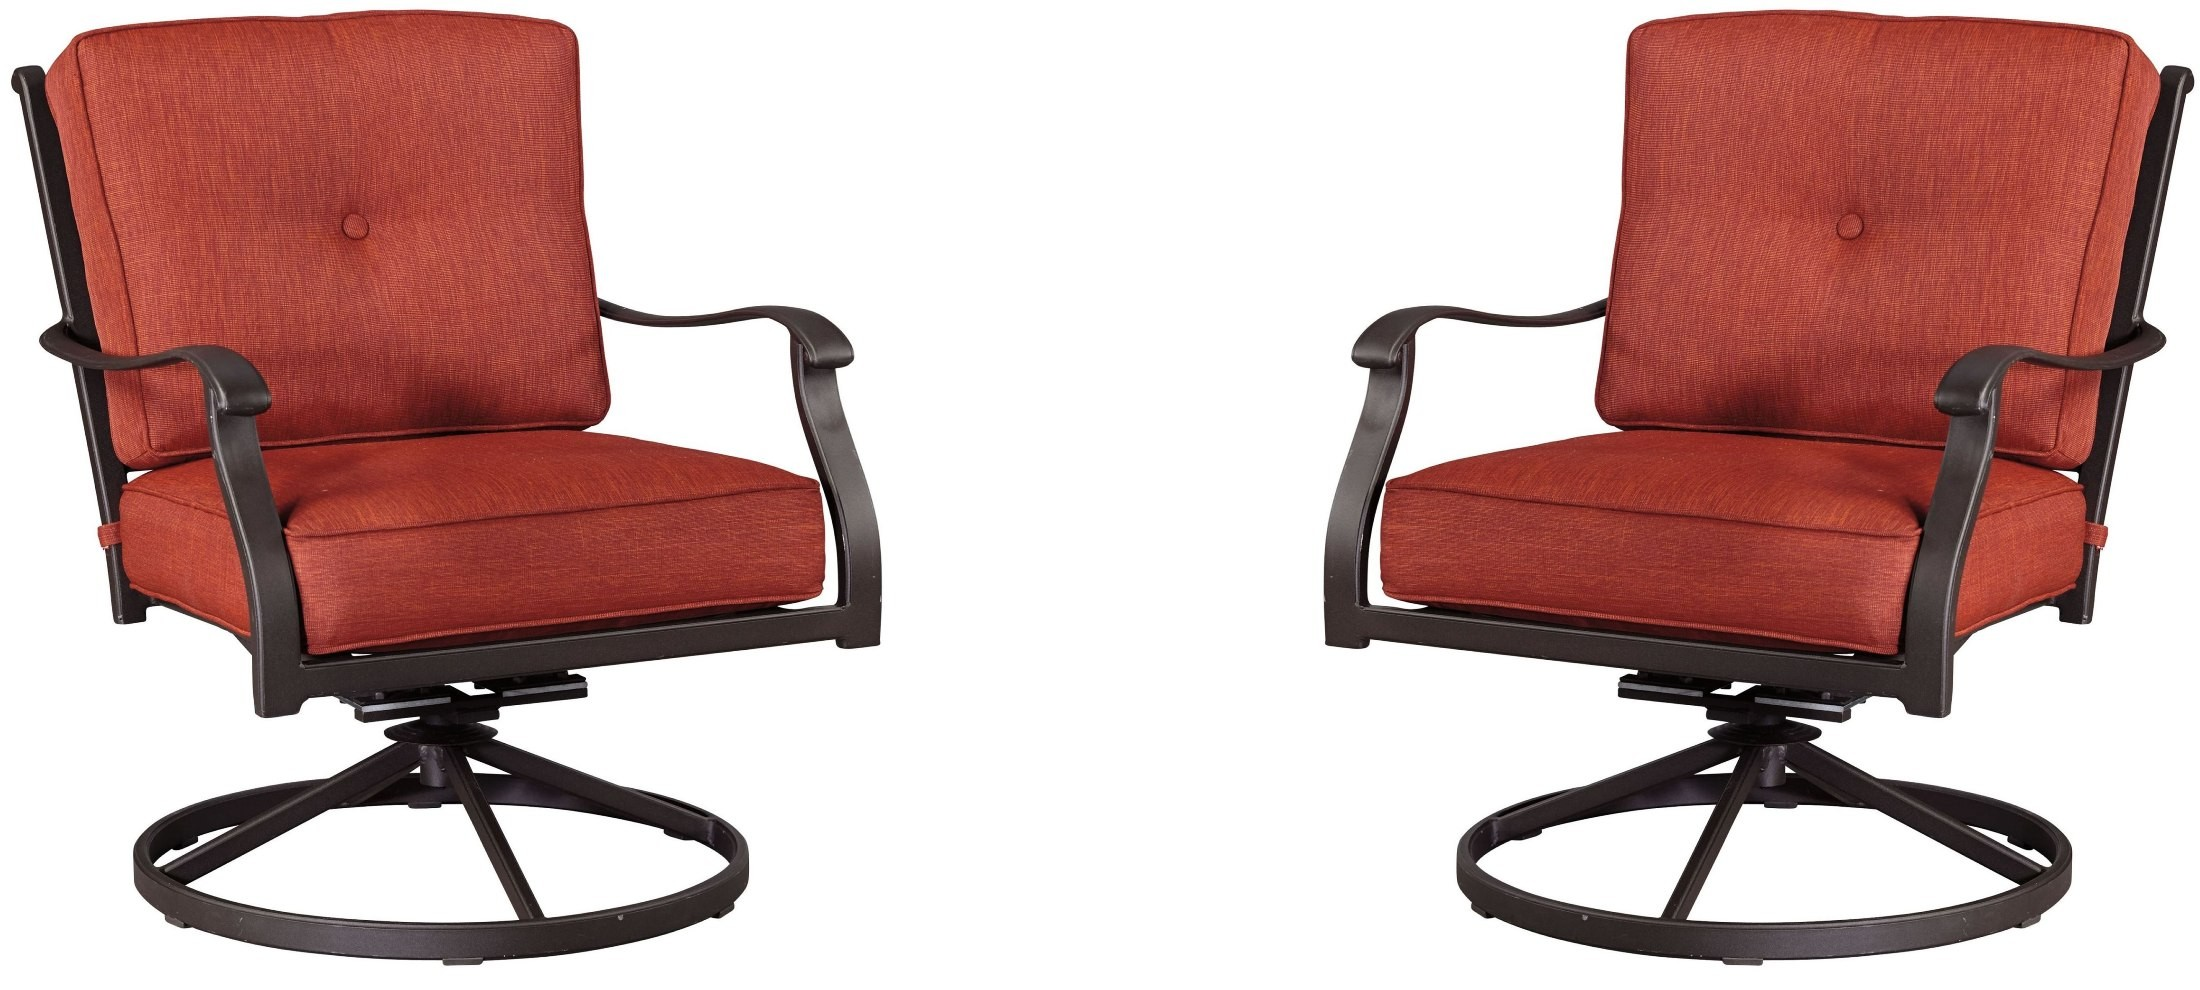 Orange Lounge Chair Burnella Orange And Brown Outdoor Swivel Lounge Chair Set